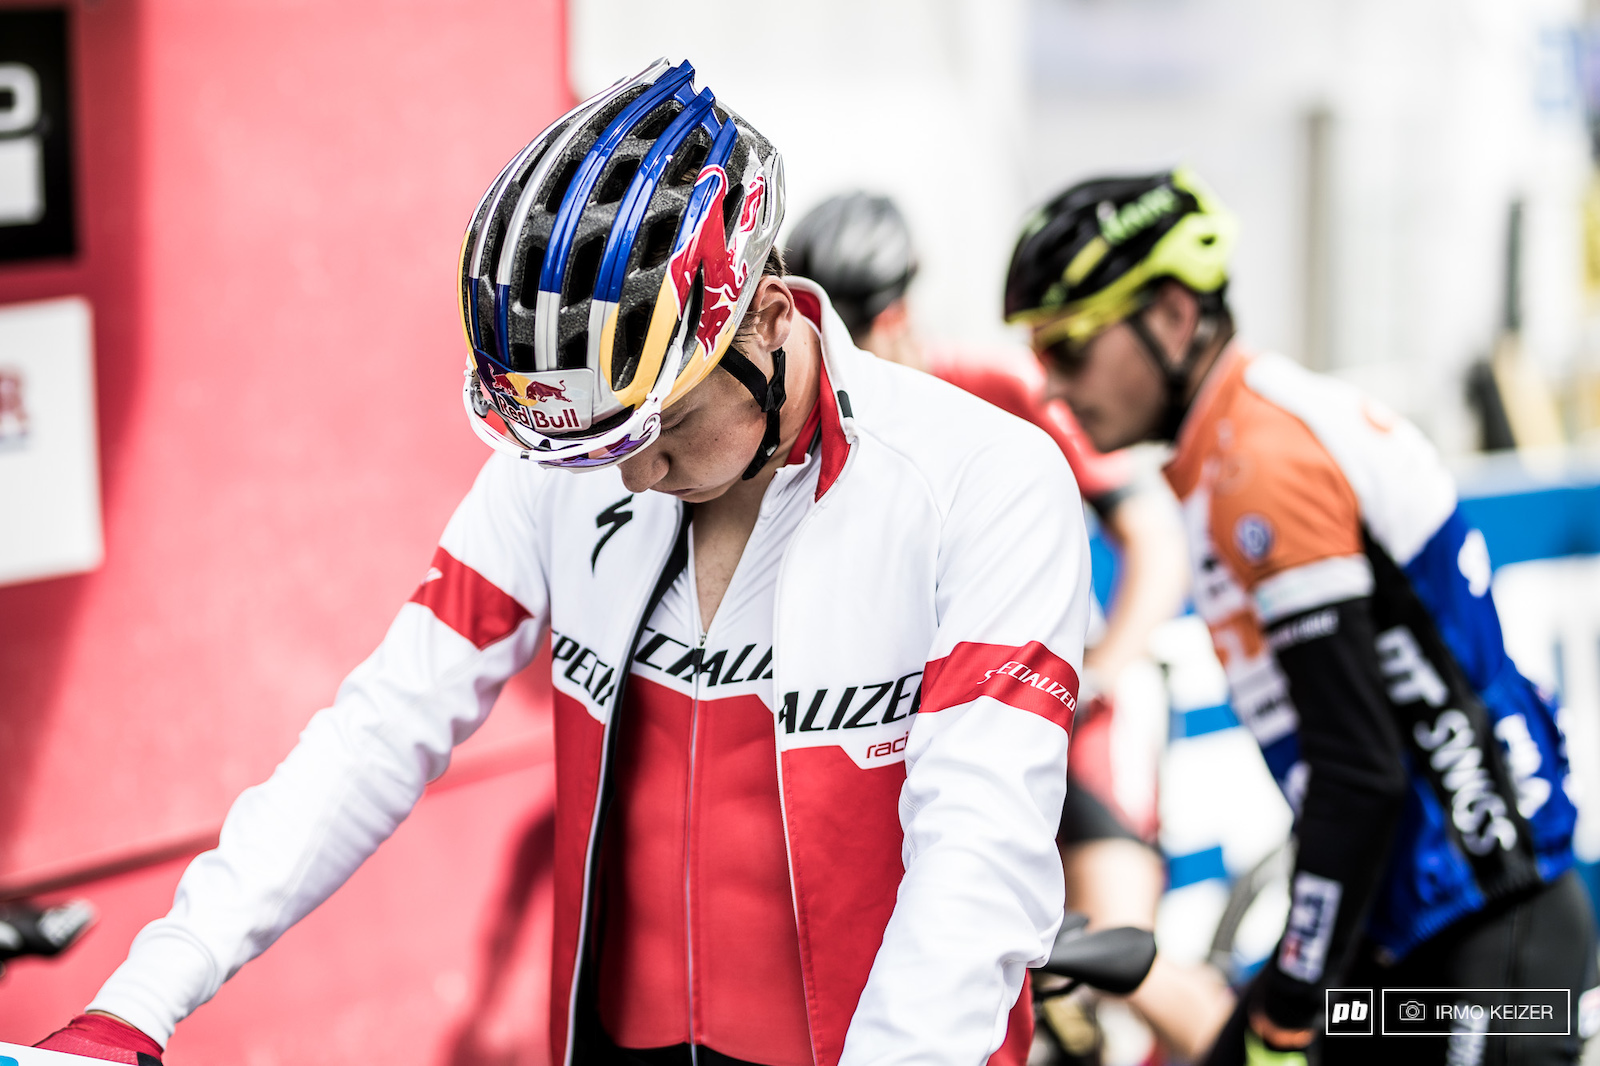 Simon Andreassen was back on it in Andorra riding to victory unchallenged. What will today bring